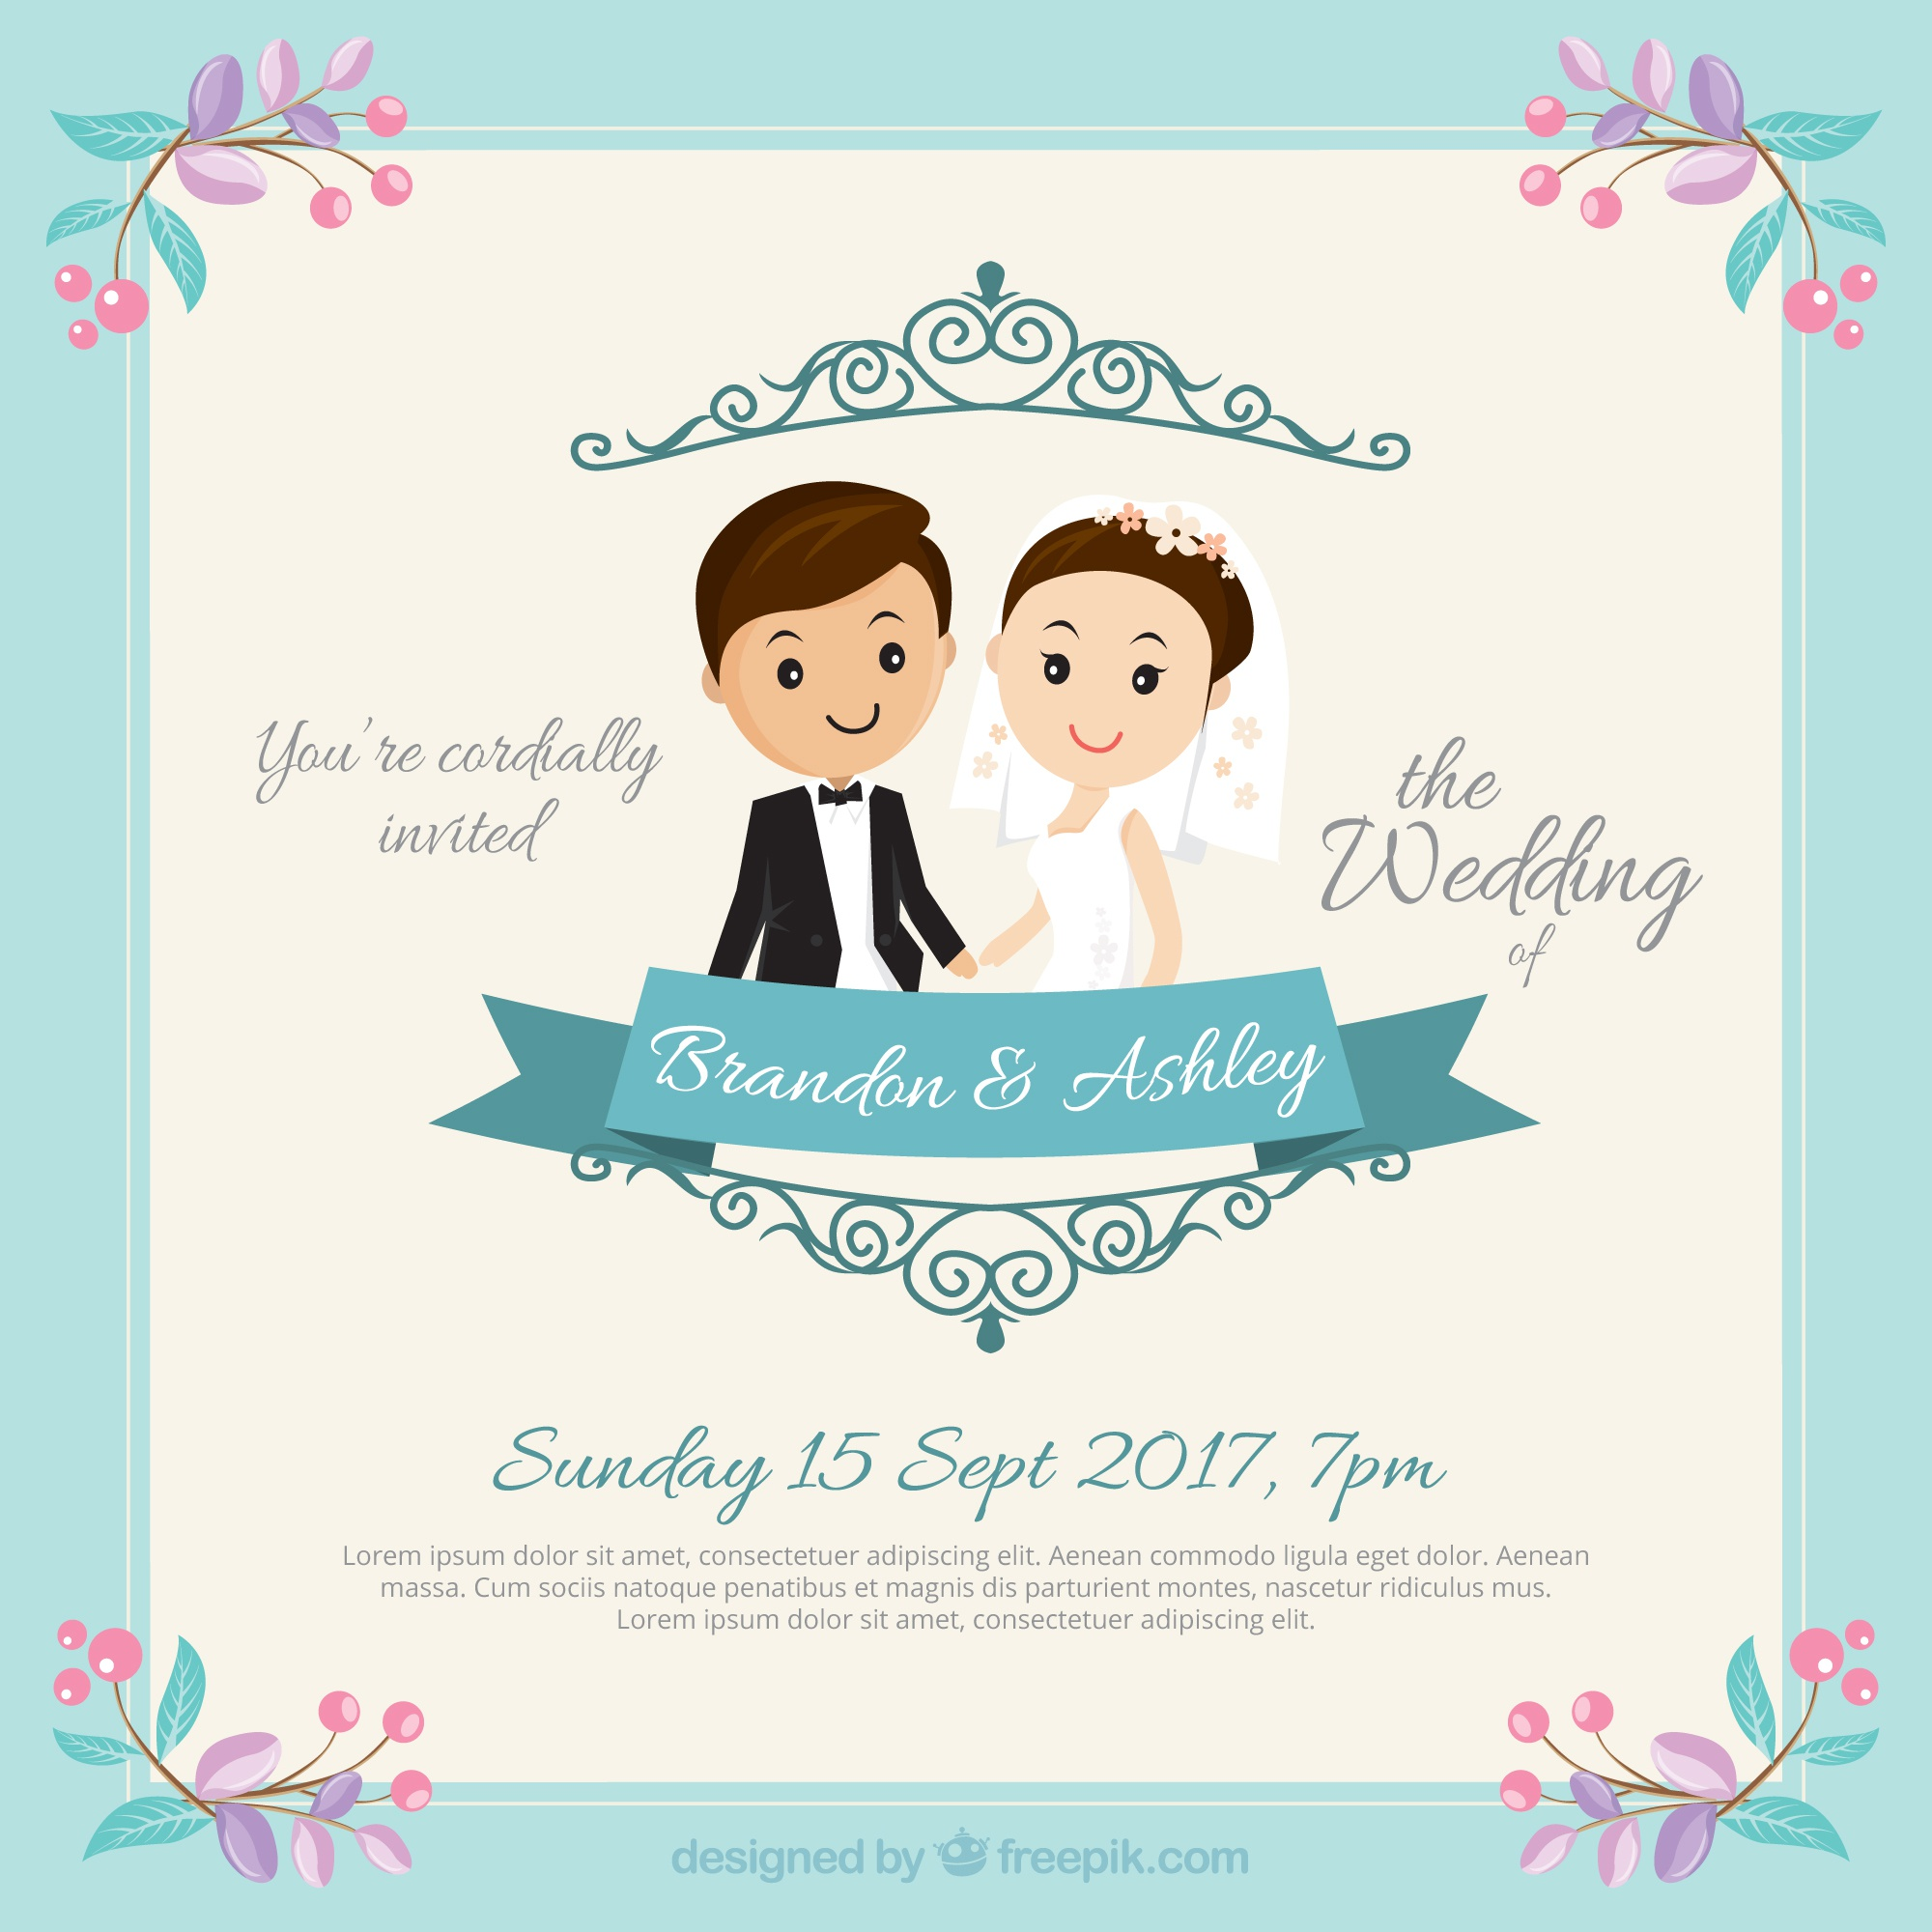 Nice couple wedding invitation